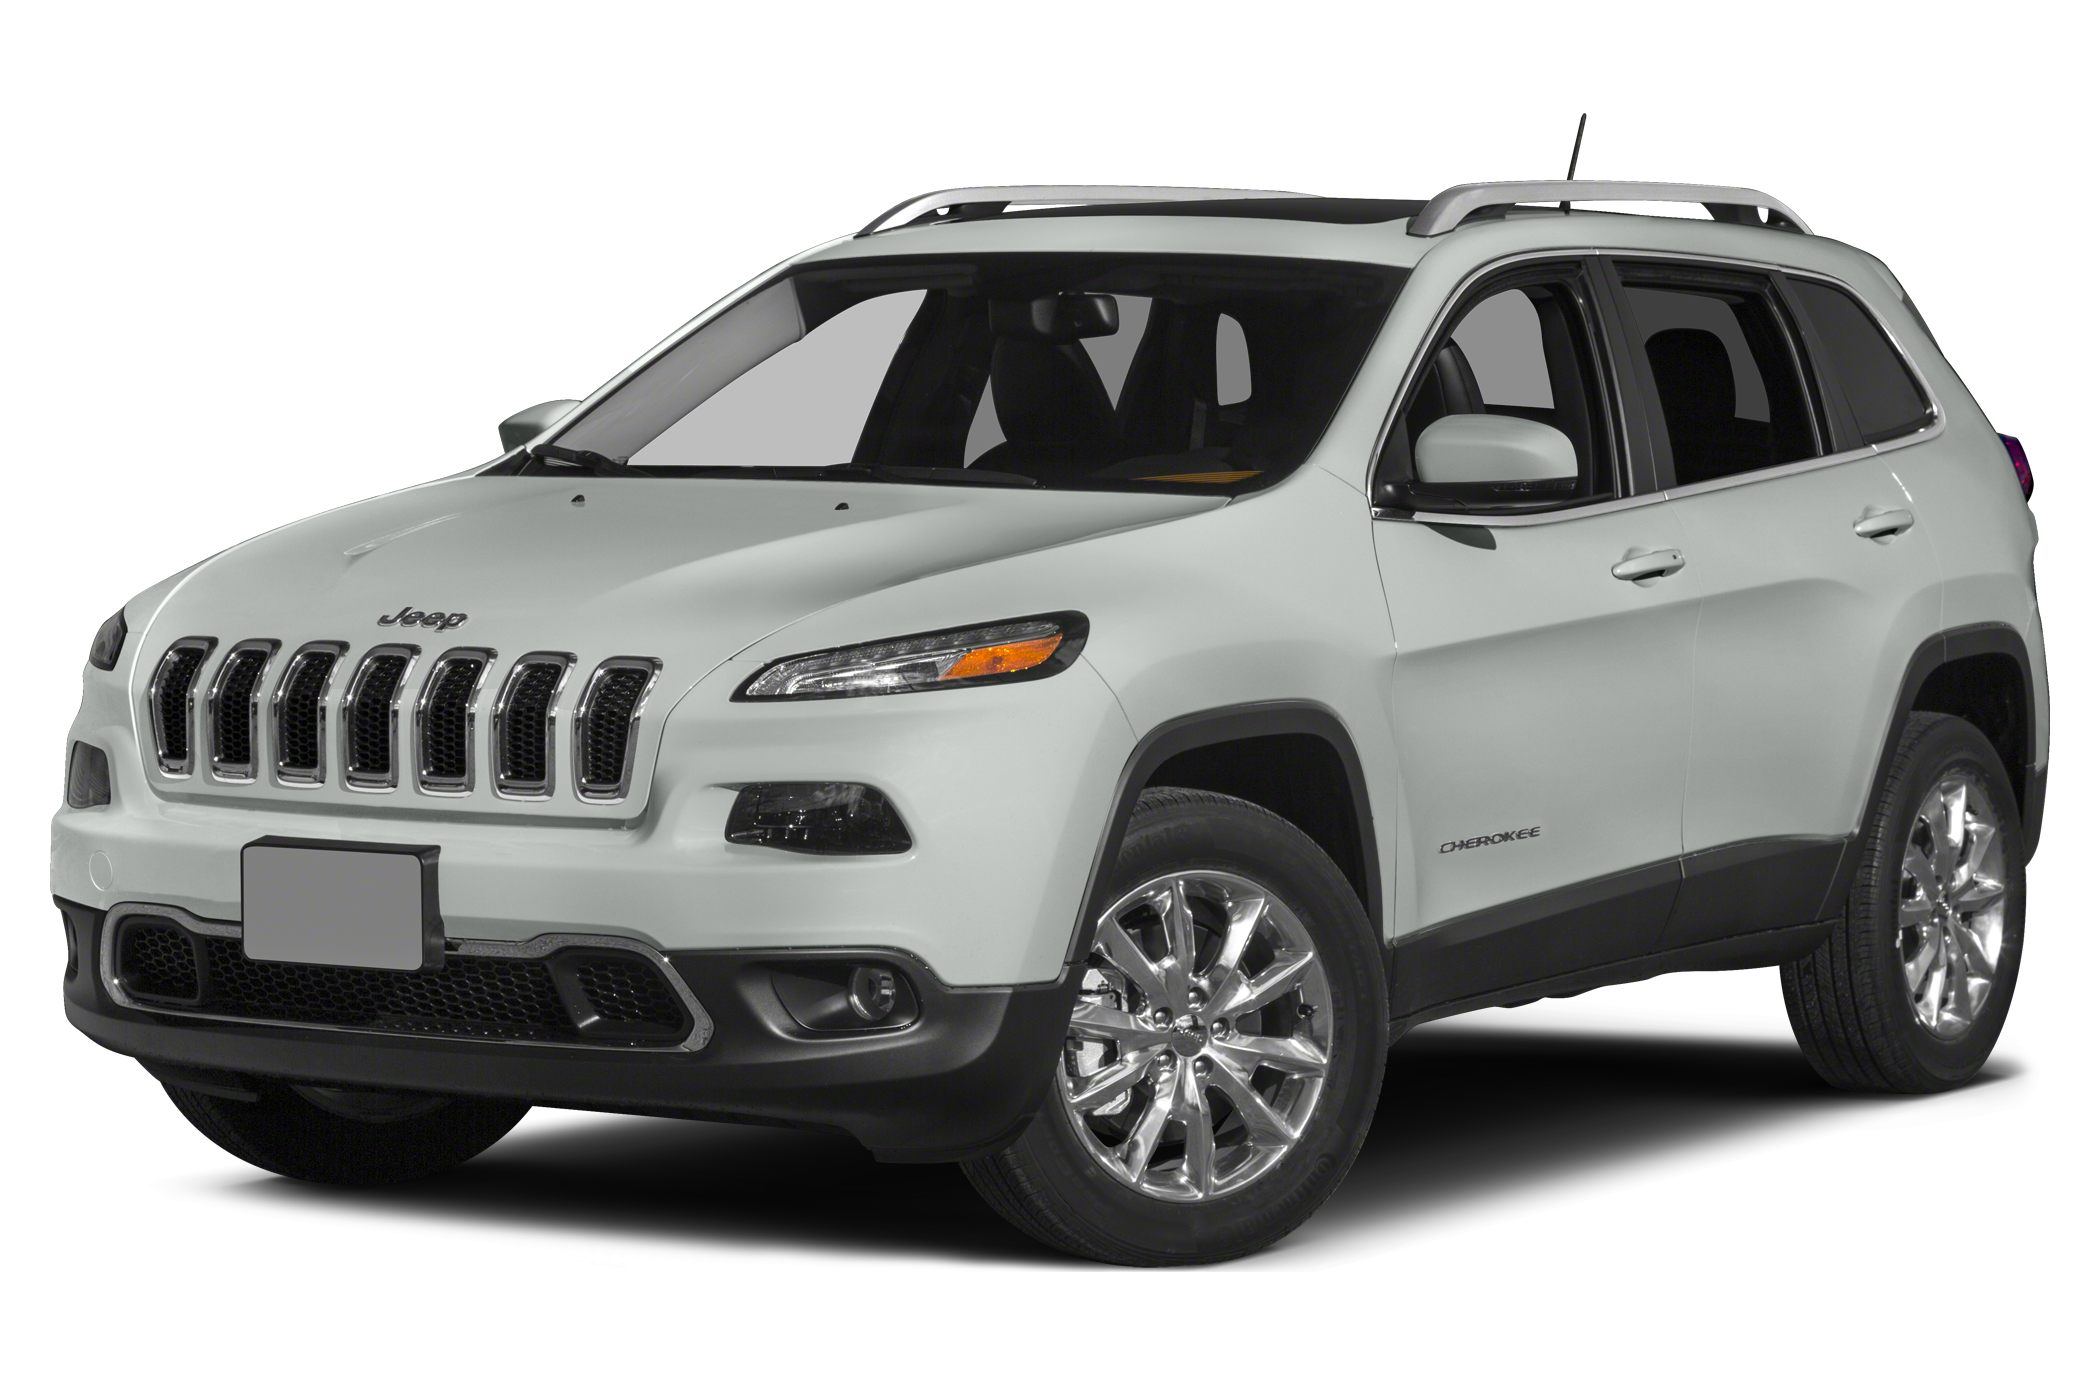 2015 Jeep Cherokee Sport SUV for sale in Kansas City for $26,485 with 3 miles.